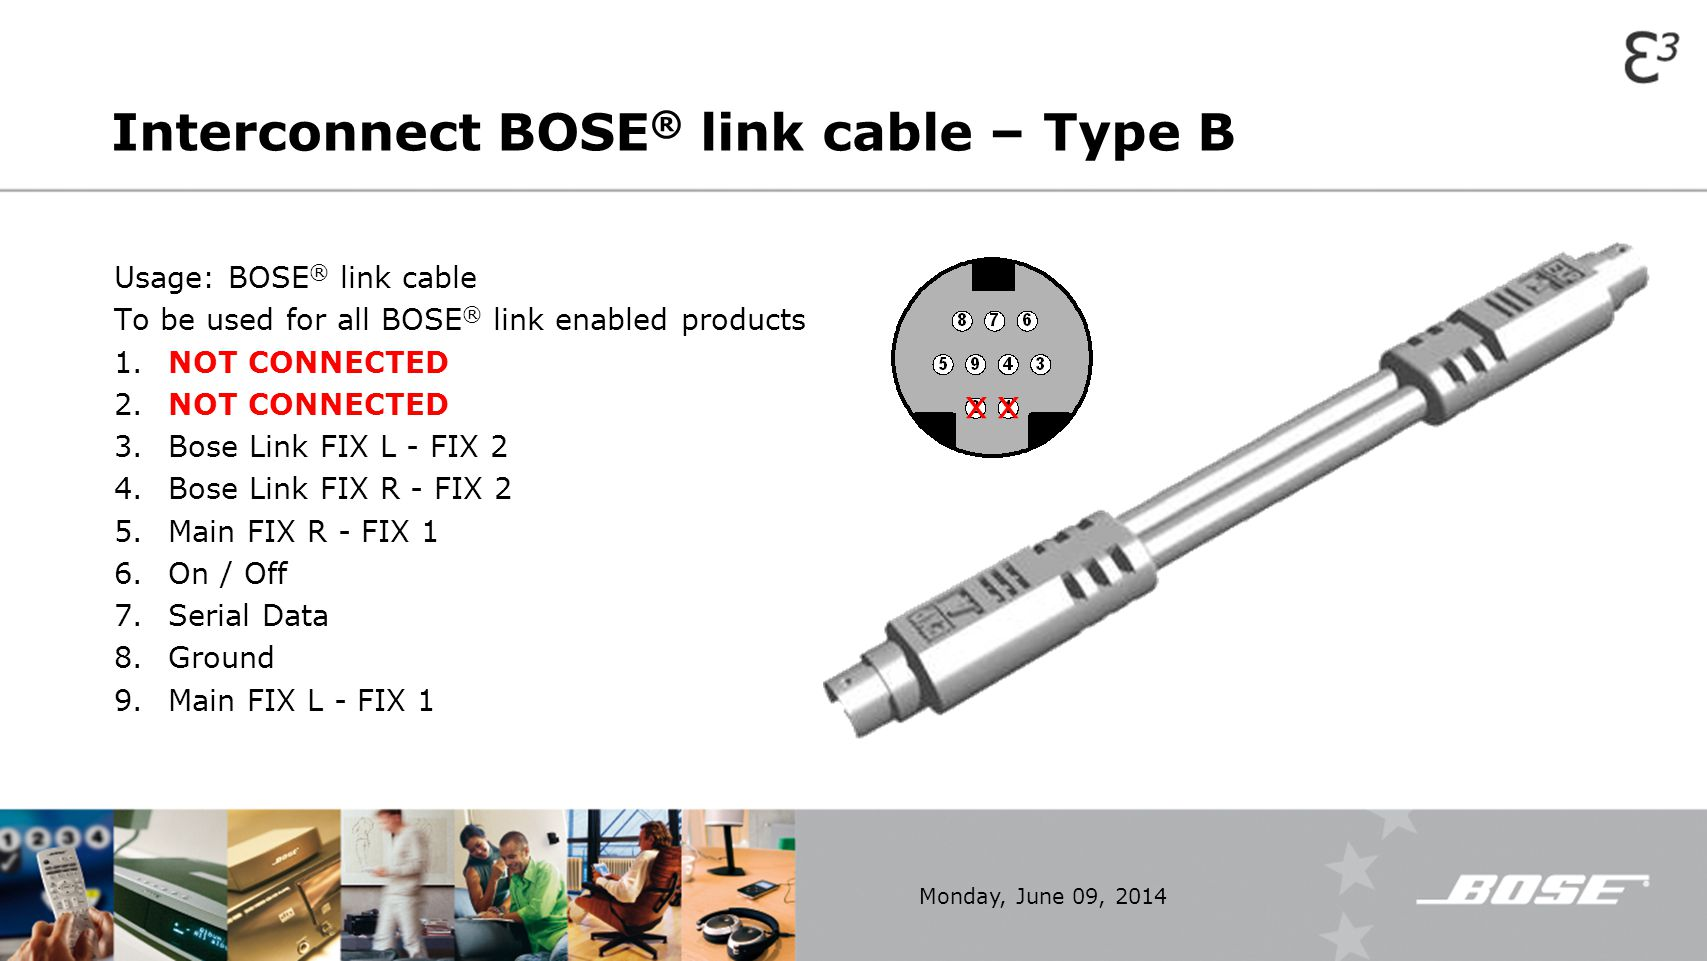 Interconnect BOSE® link cable – Type B